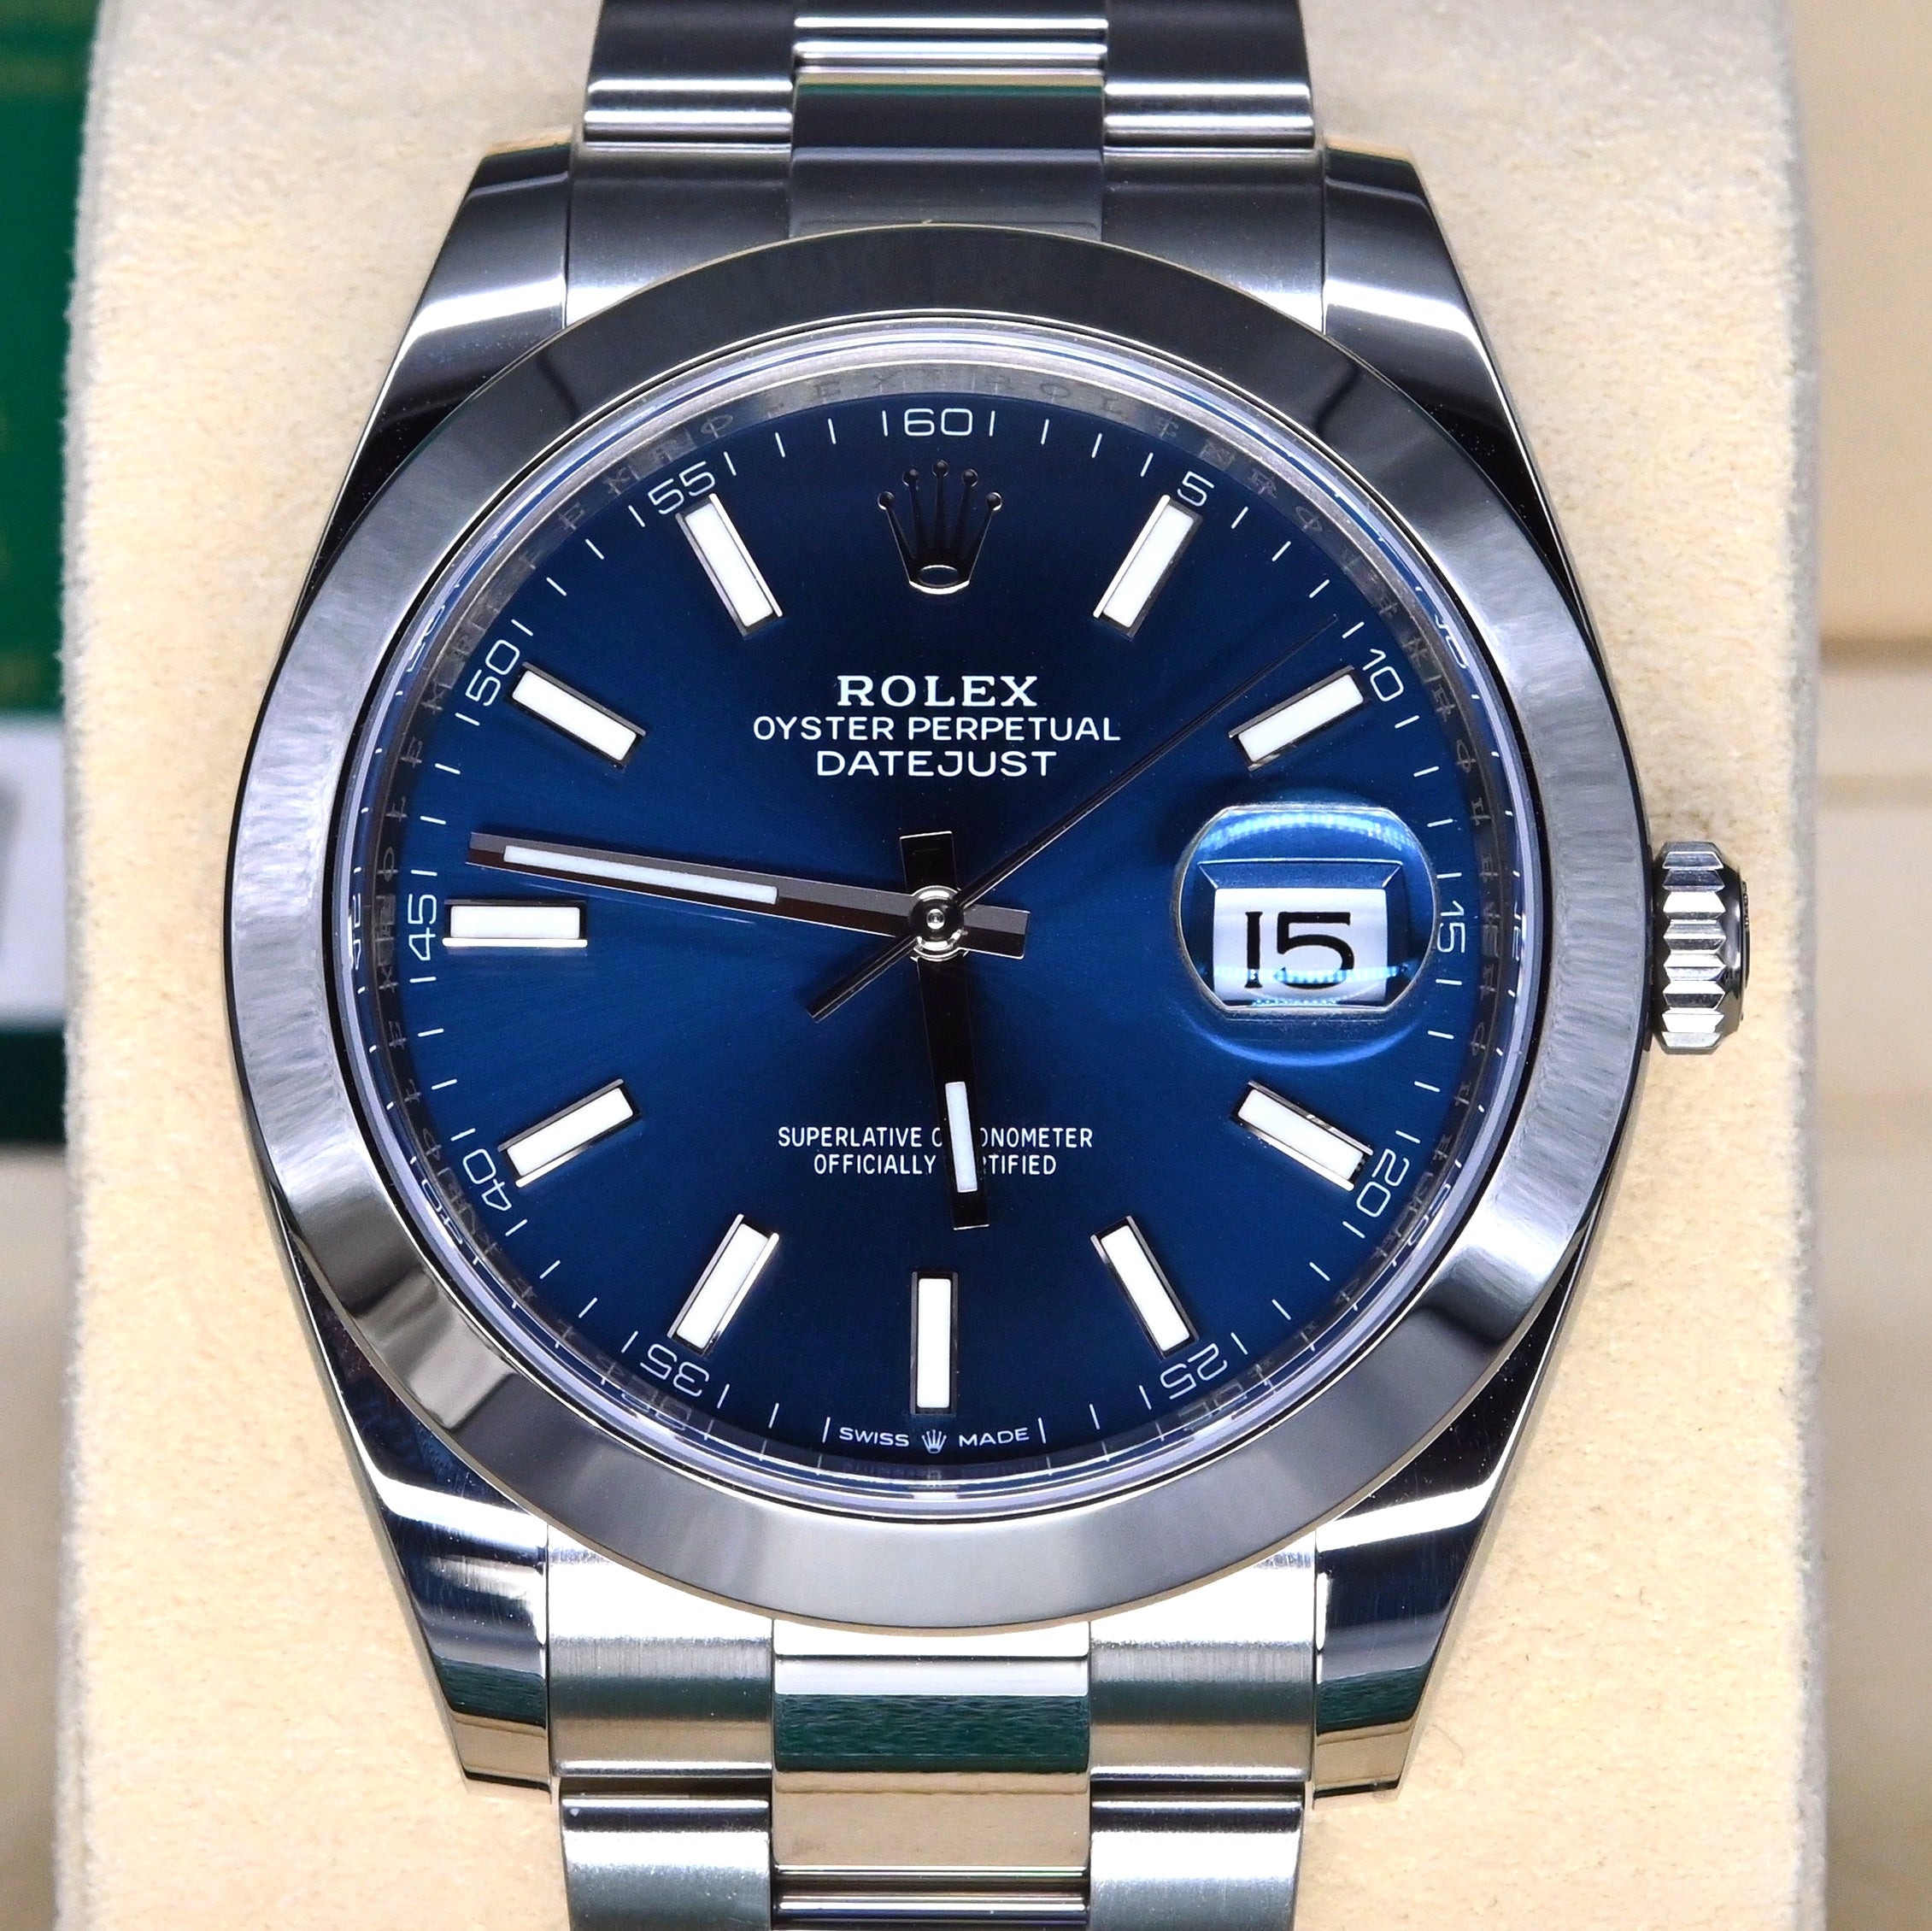 [Pre-Owned Watch] Rolex Datejust 41mm 126300 Blue Index Dial (Oyster Bracelet)